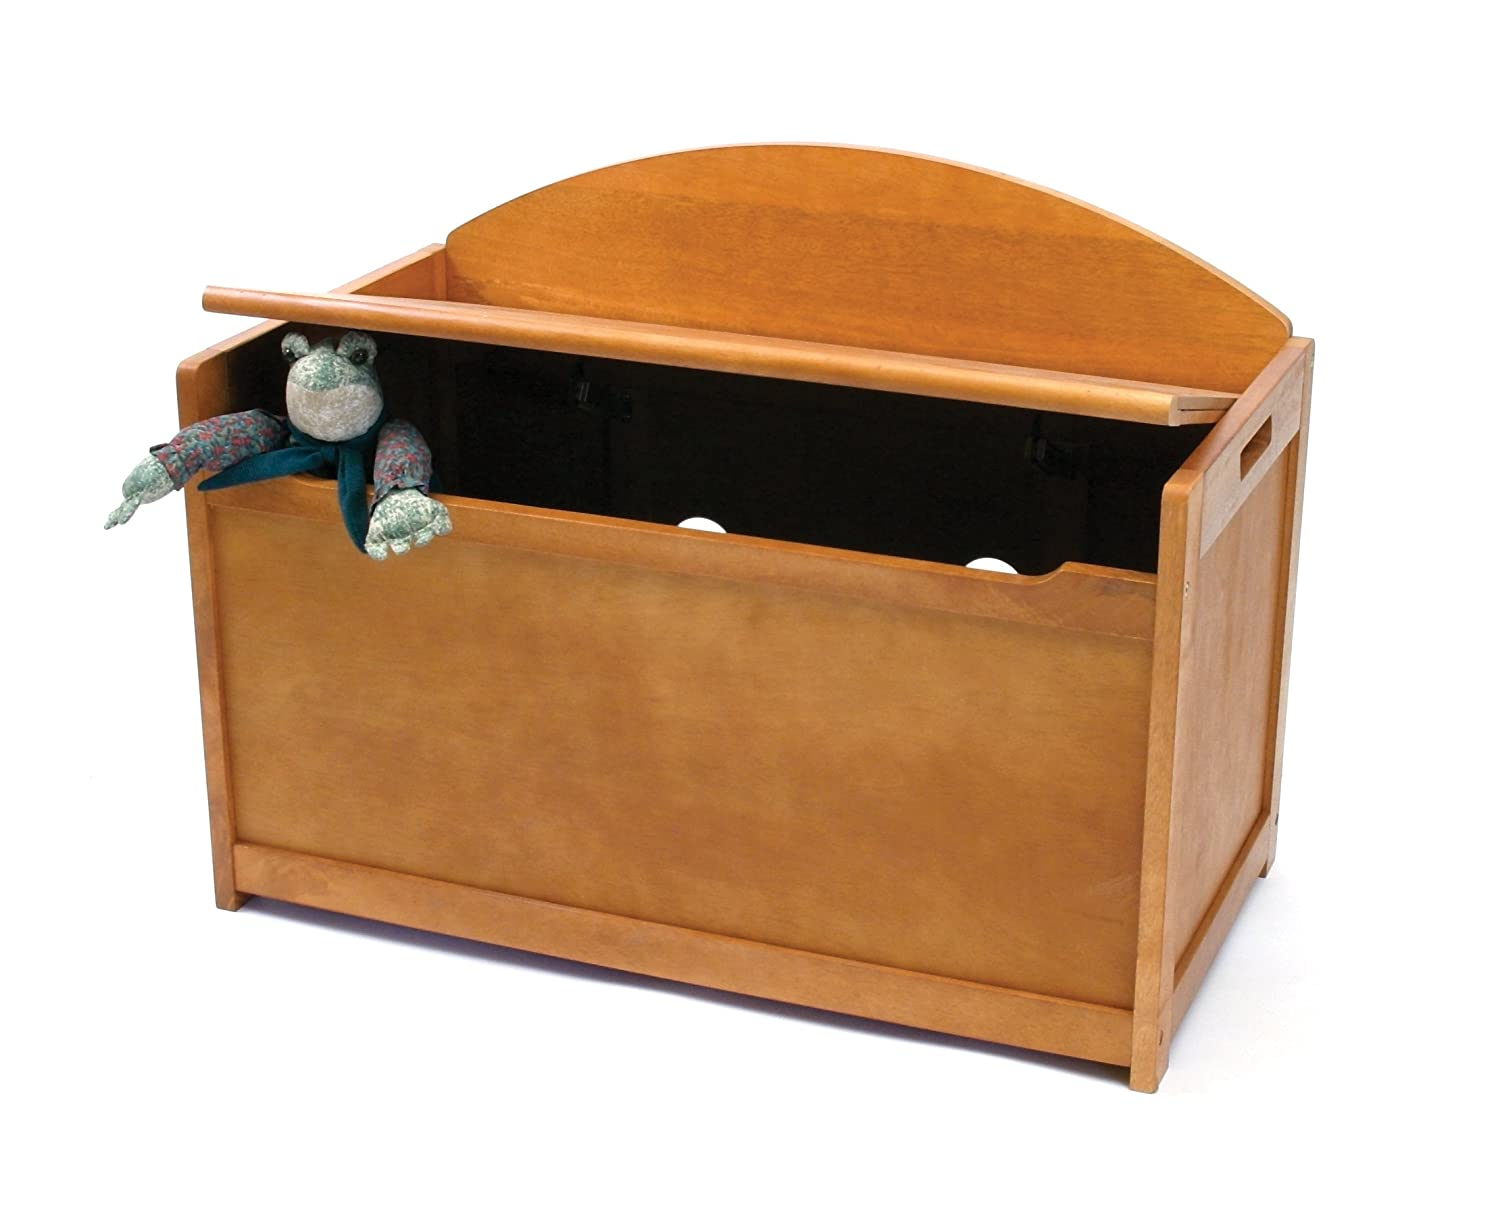 Lipper International 598WN Child's Toy Chest, 33.25 W x 17.75 D x 24.5 H, Walnut Finish Inc. Lipper International